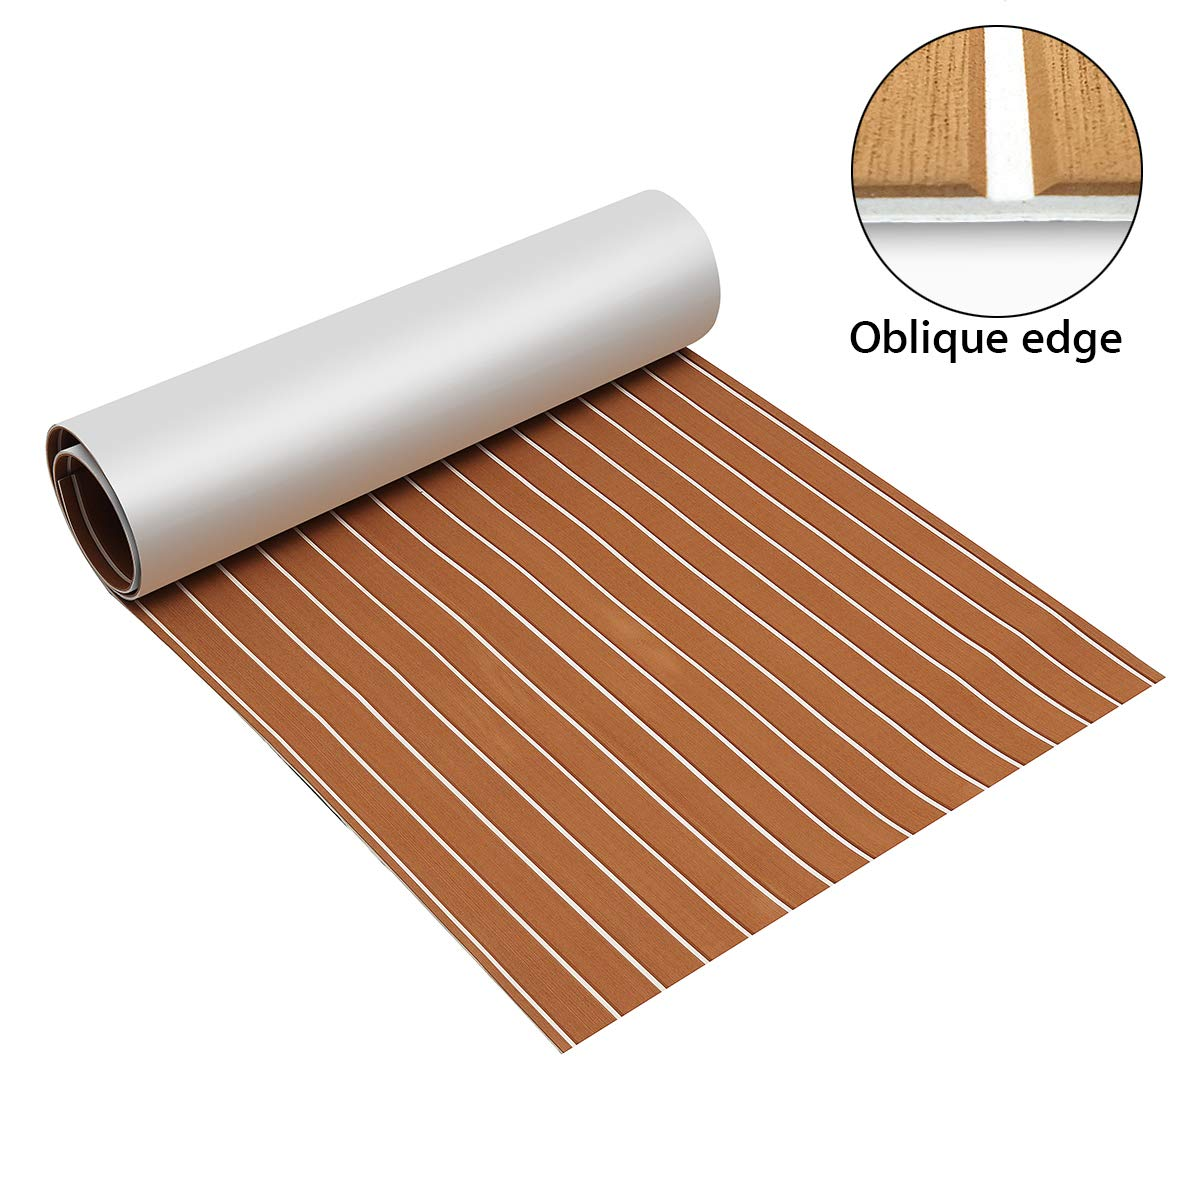 Zeeos EVA Foam Teak Decking Floor Sheet,Non-Skid-Self-Adhesive Flooring Synthetic Deck Marine Yacht RV Boat Flooring Mats,Teak with White line(94.5''x36'') by Zeeos